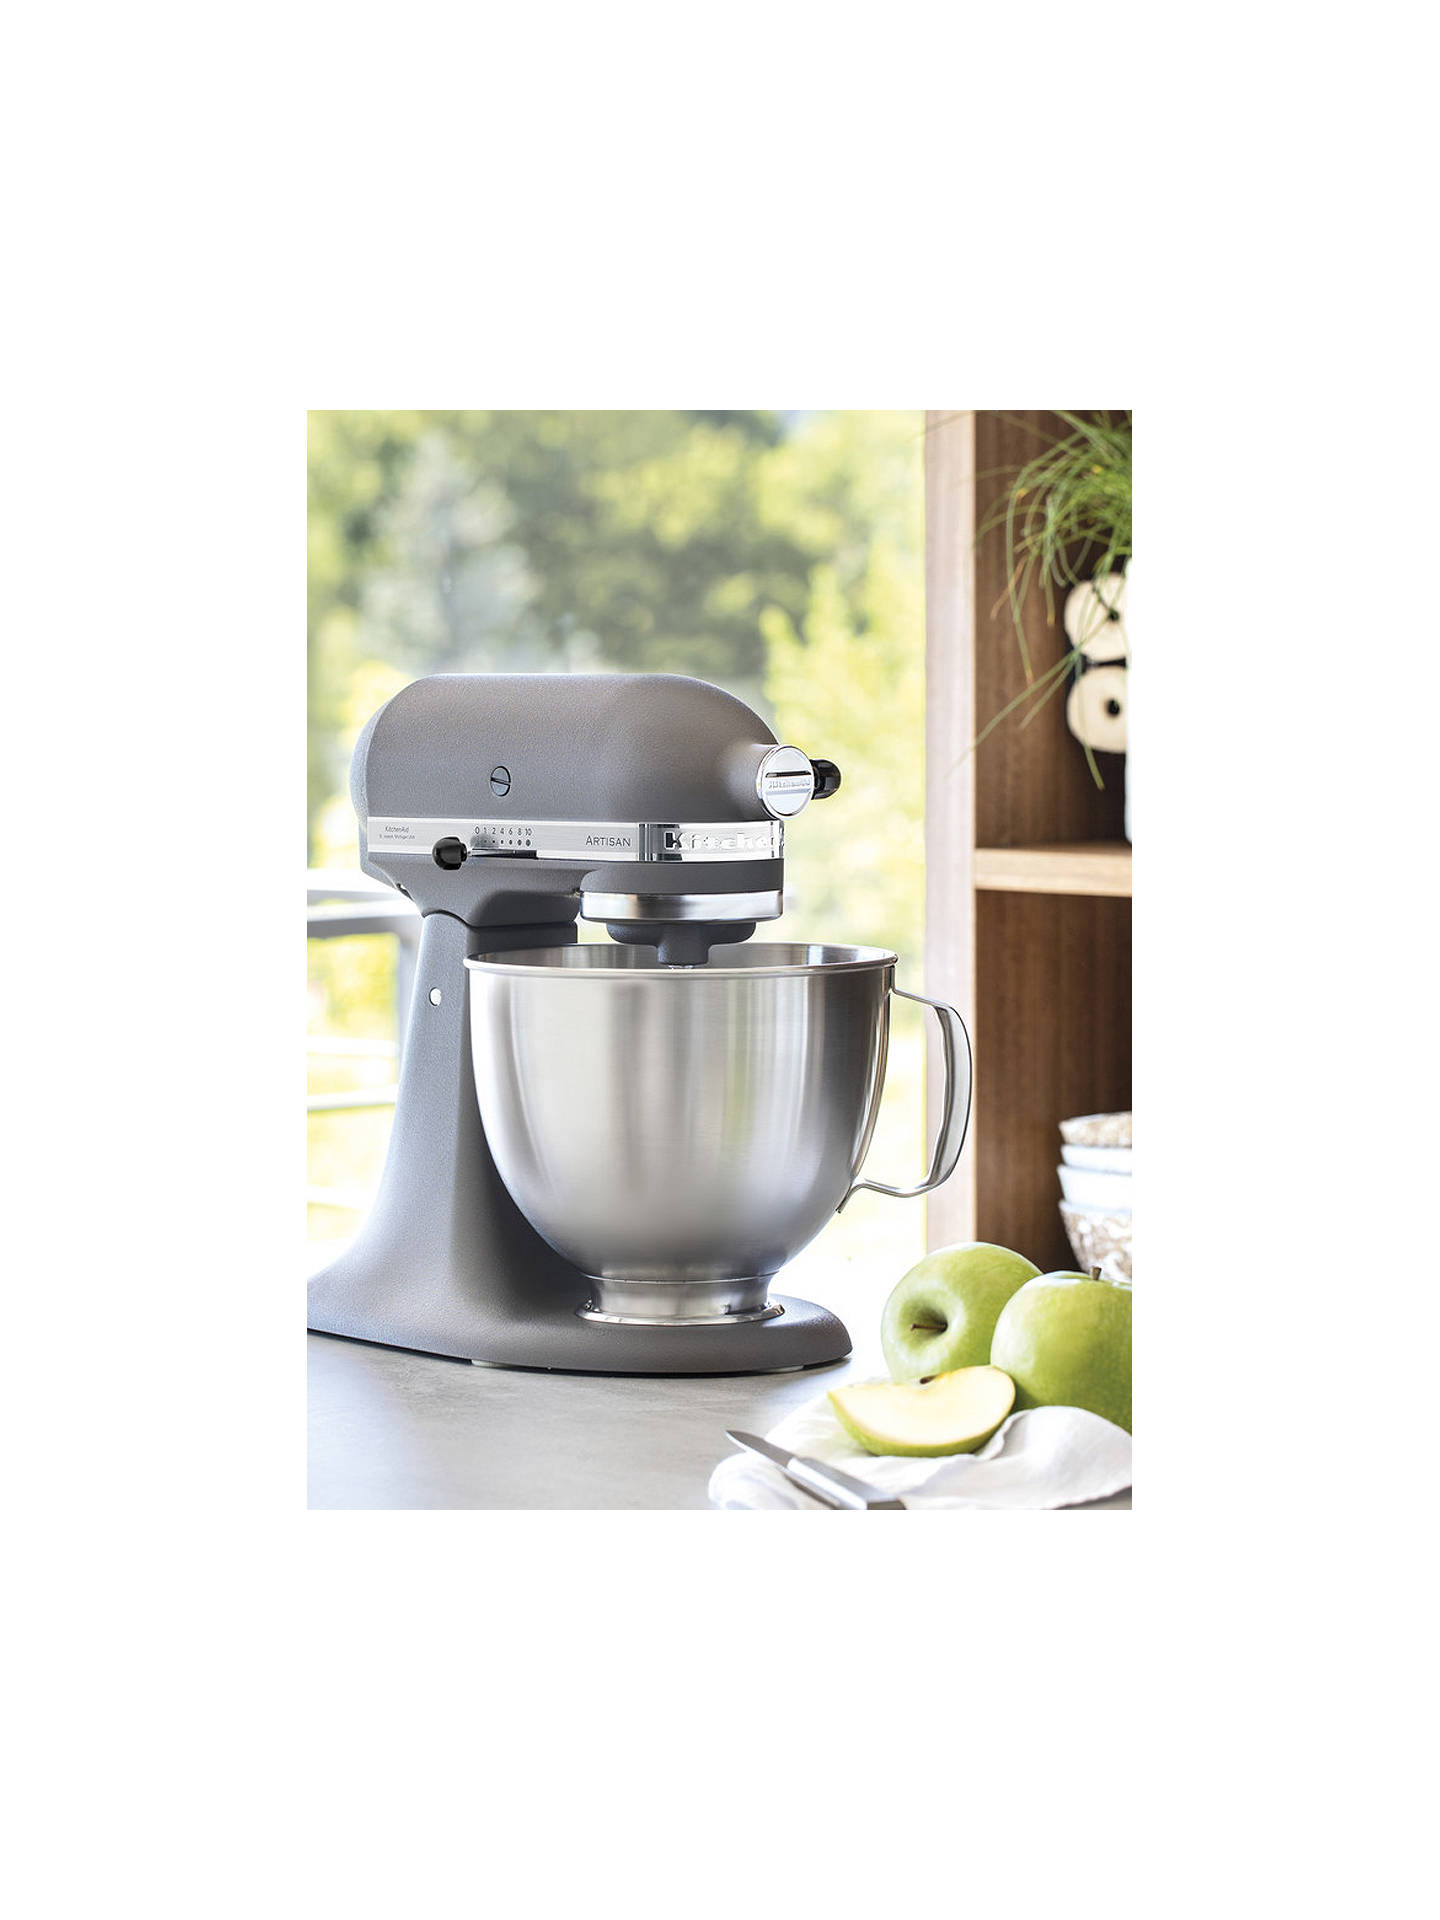 Buy KitchenAid 5KSM156BFP Artisan 4.8L Stand Mixer, Imperial Grey Online at johnlewis.com